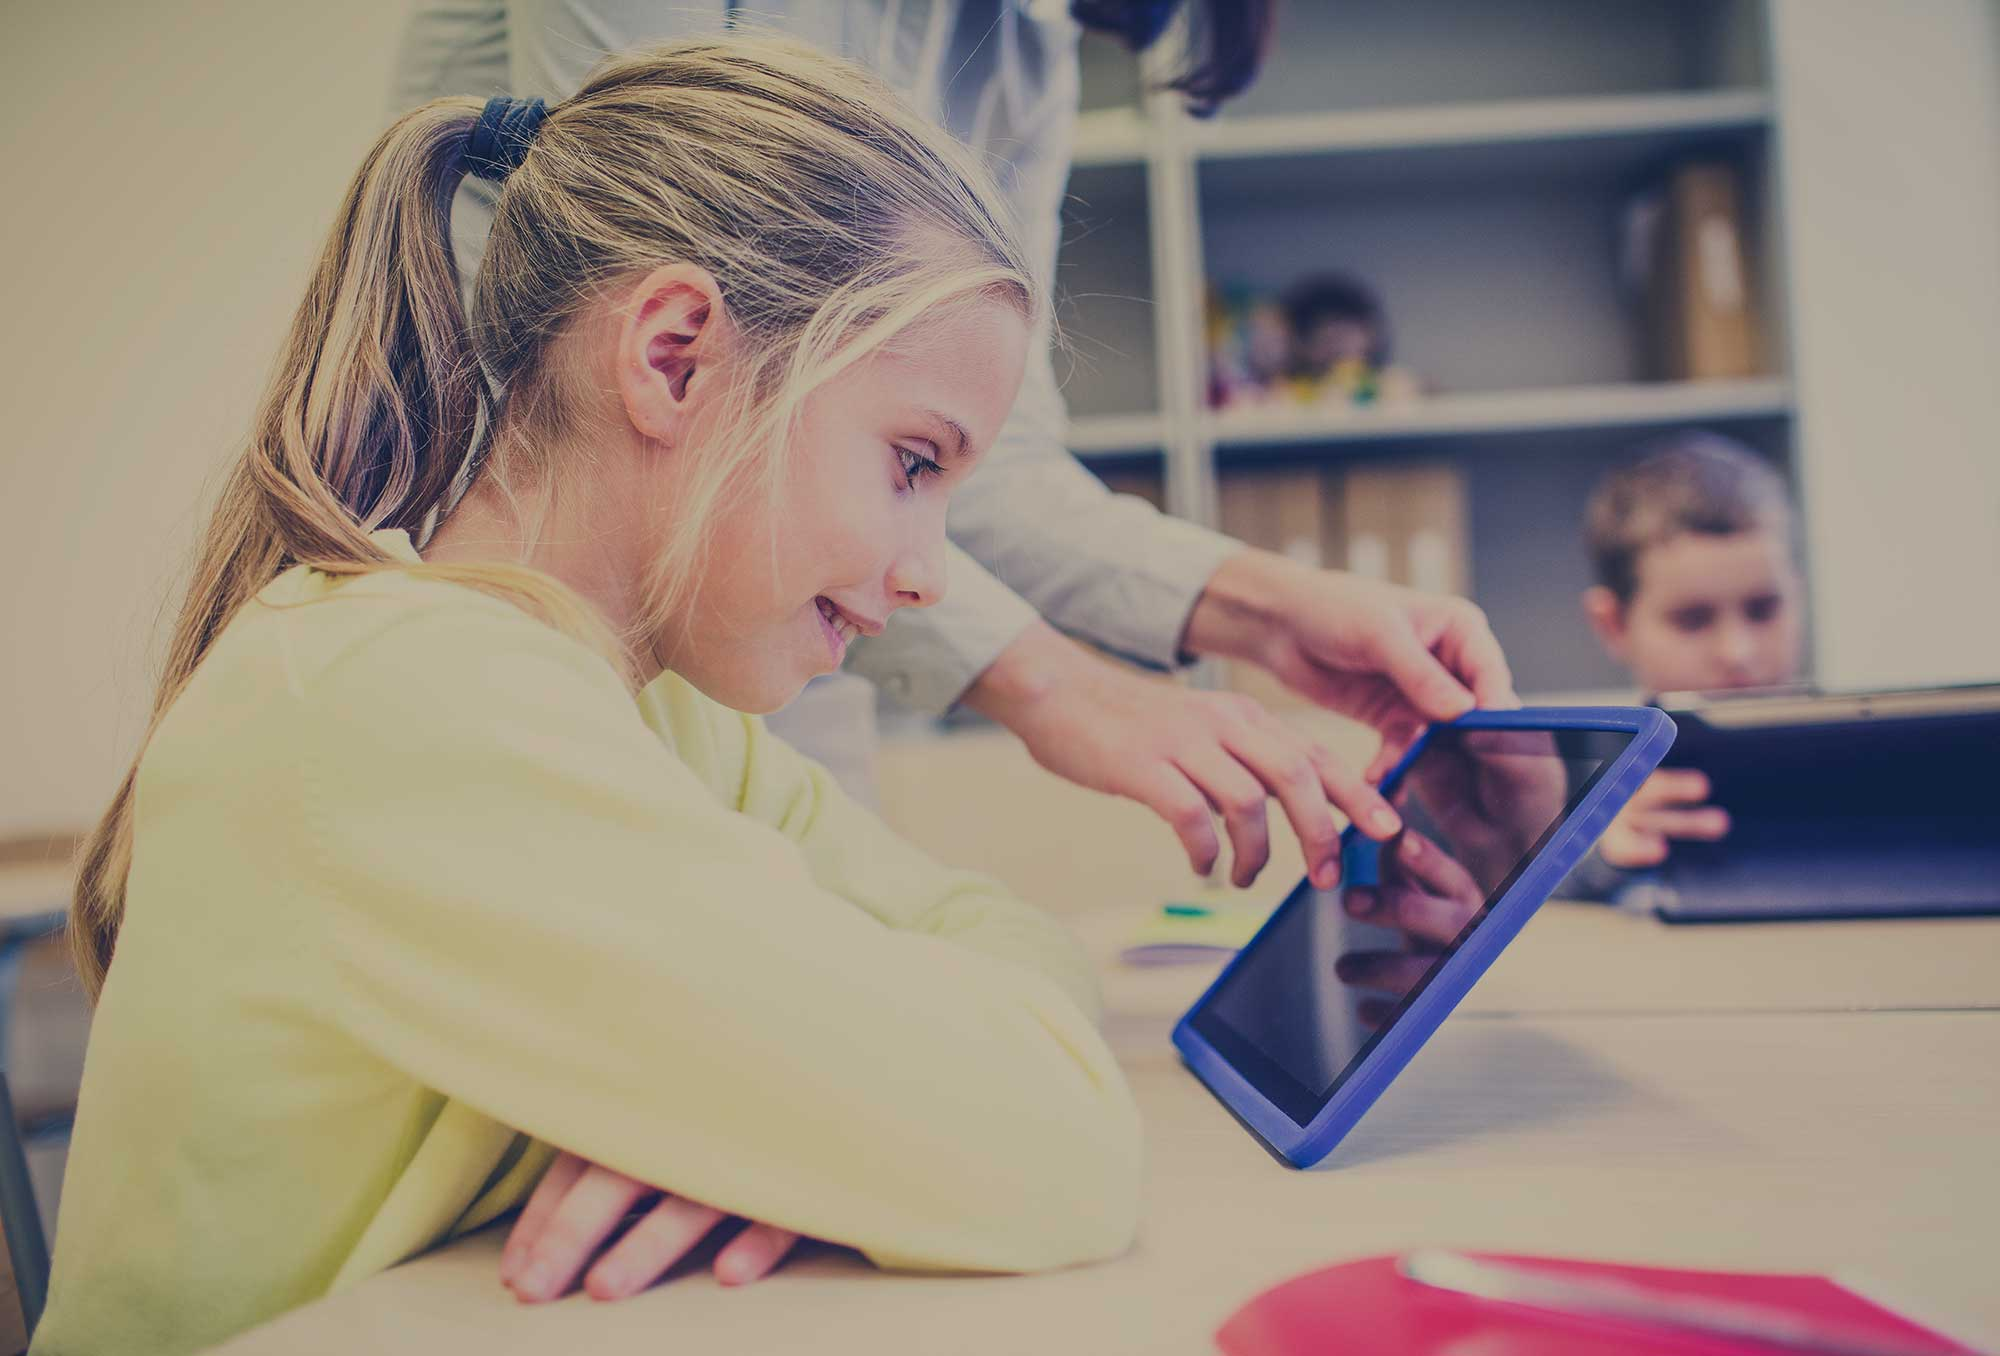 7 Wireless Network Design Tips to Support iPads in the Classroom